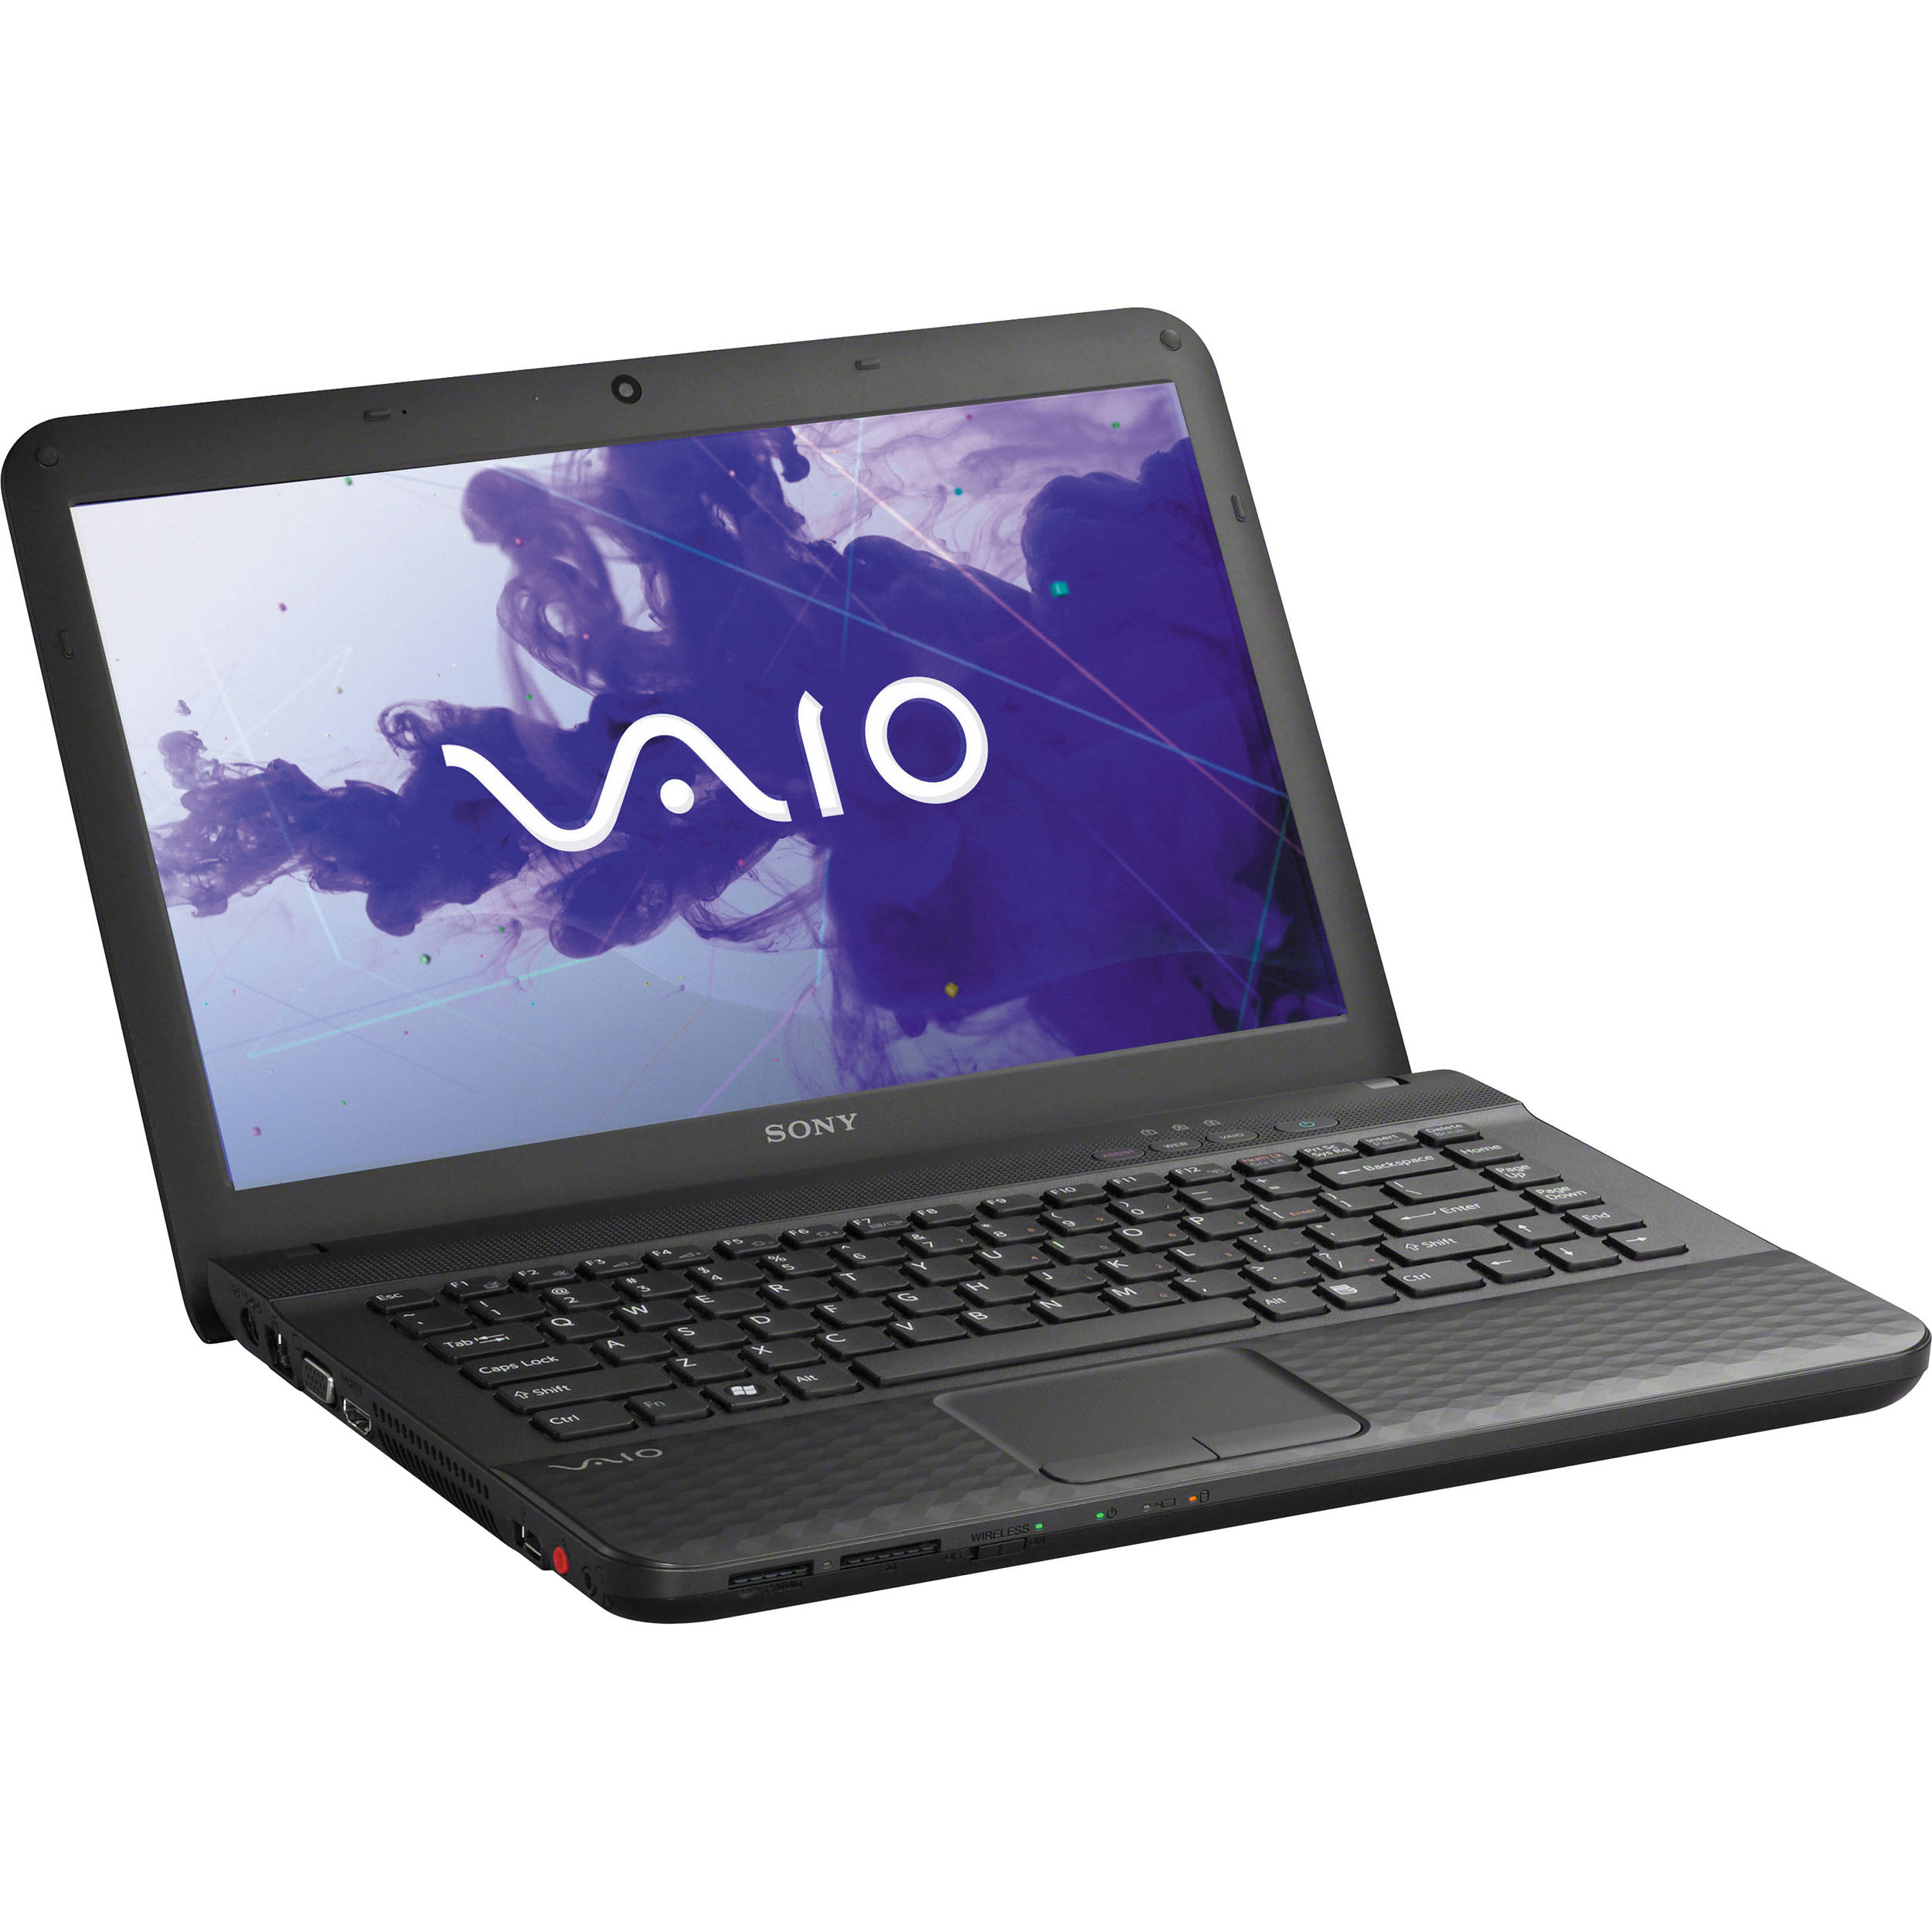 Sony Vaio VPCEG23FX Easy Connect Drivers Windows XP